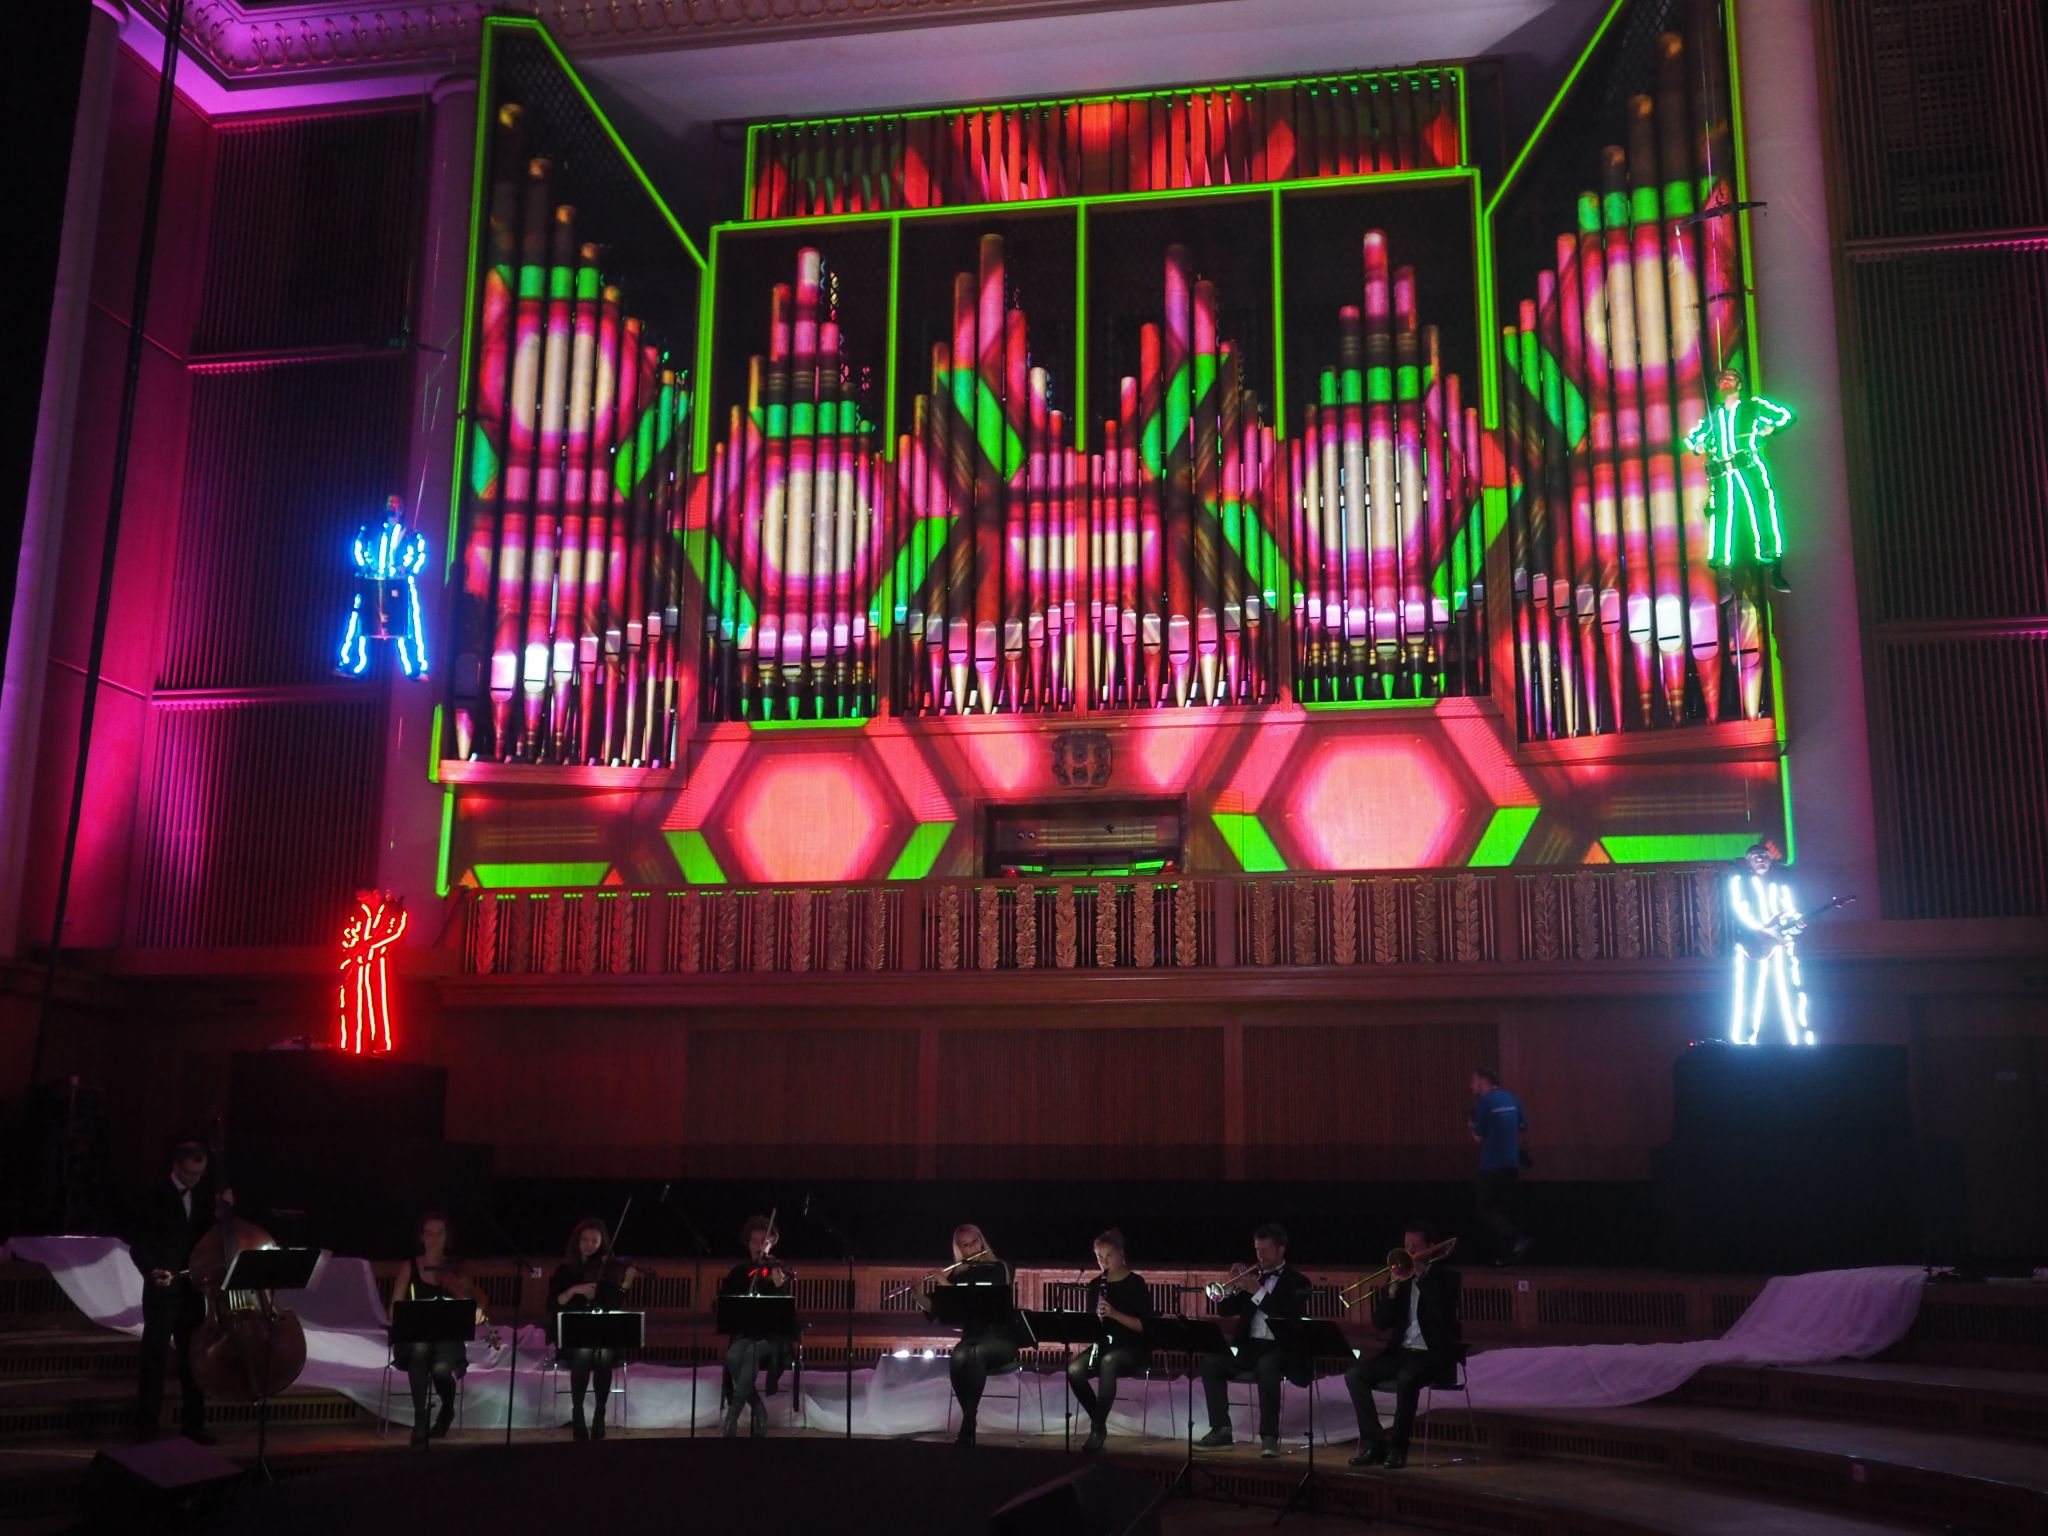 Zeiss future of optice Berlin Funkhaus music and light show